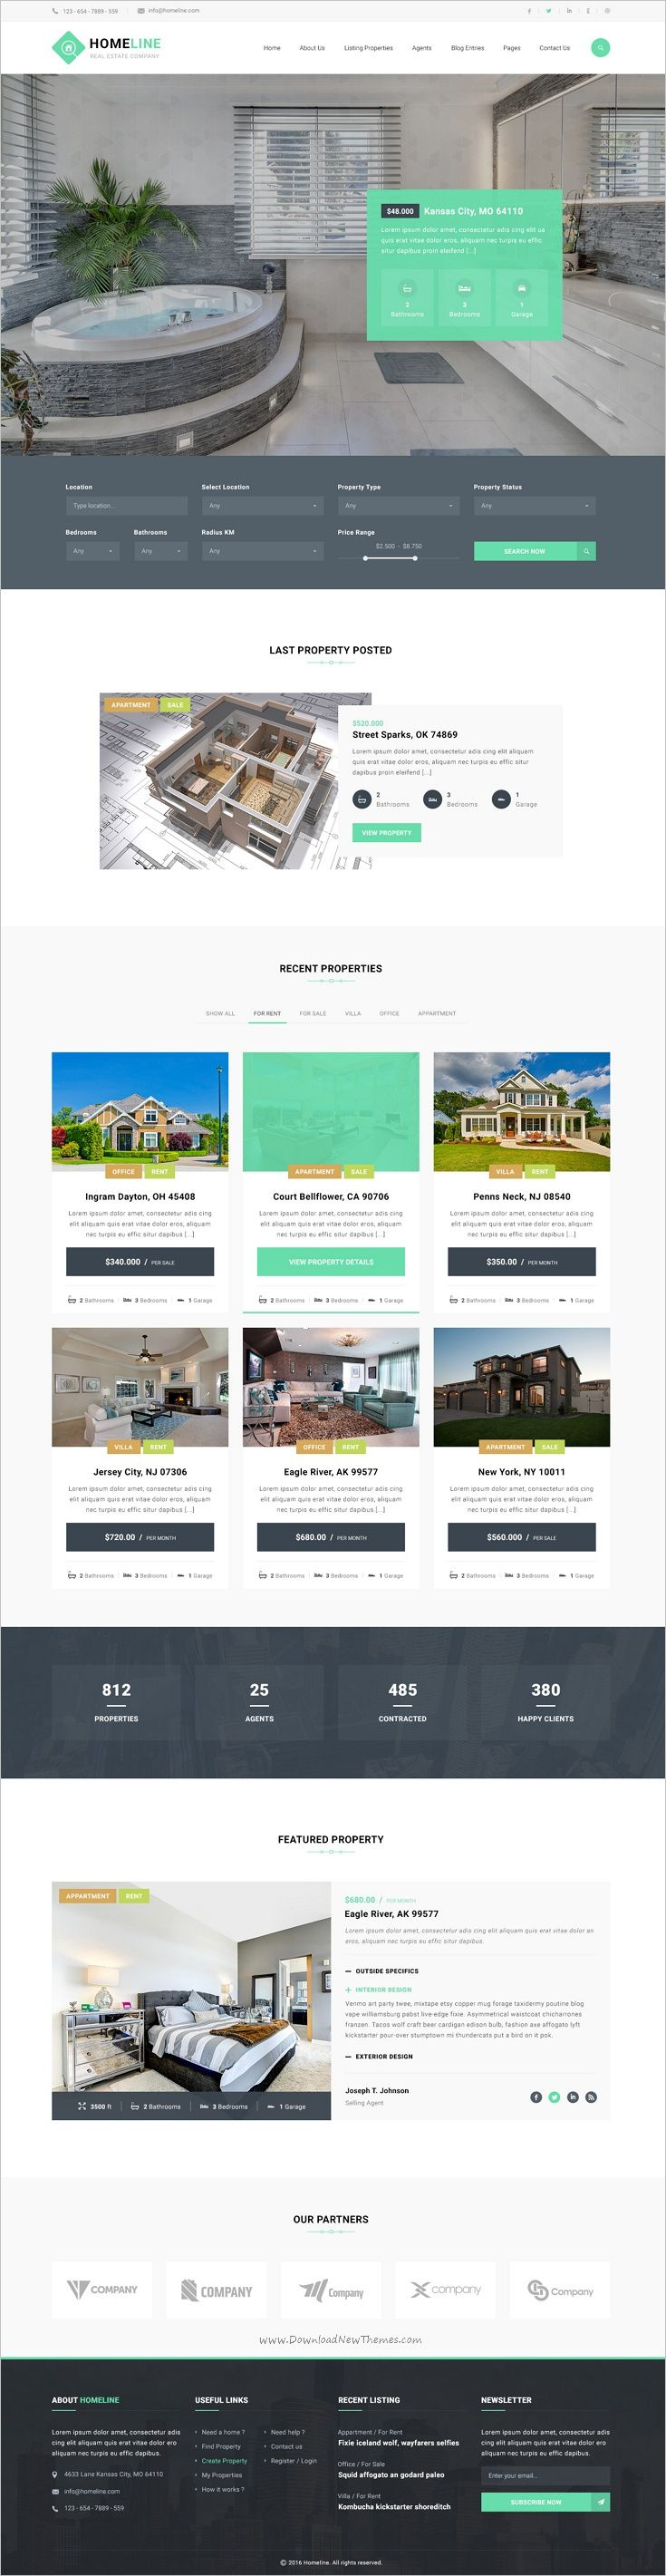 Homeline is a modern and unique #PSD #template designed for #RealEstate Business website with 3 unique homepage layouts download now➩  https://themeforest.net/item/homeline-real-estate-psd-template/18709943?ref=Datasata